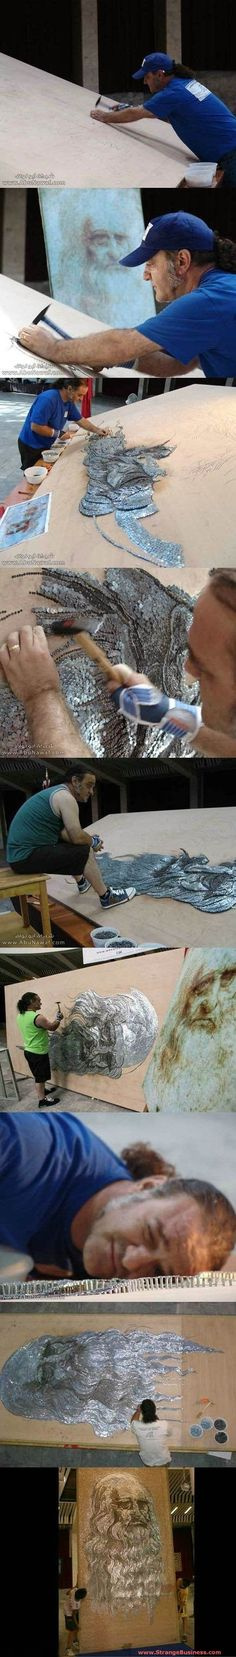 AMAZING ARTIST - WORLD'S LARGEST NAIL MOSAIC - INCREDIBLE DETAIL CREATES 3-D ARTWORK FROM HAMMERED NAILS!